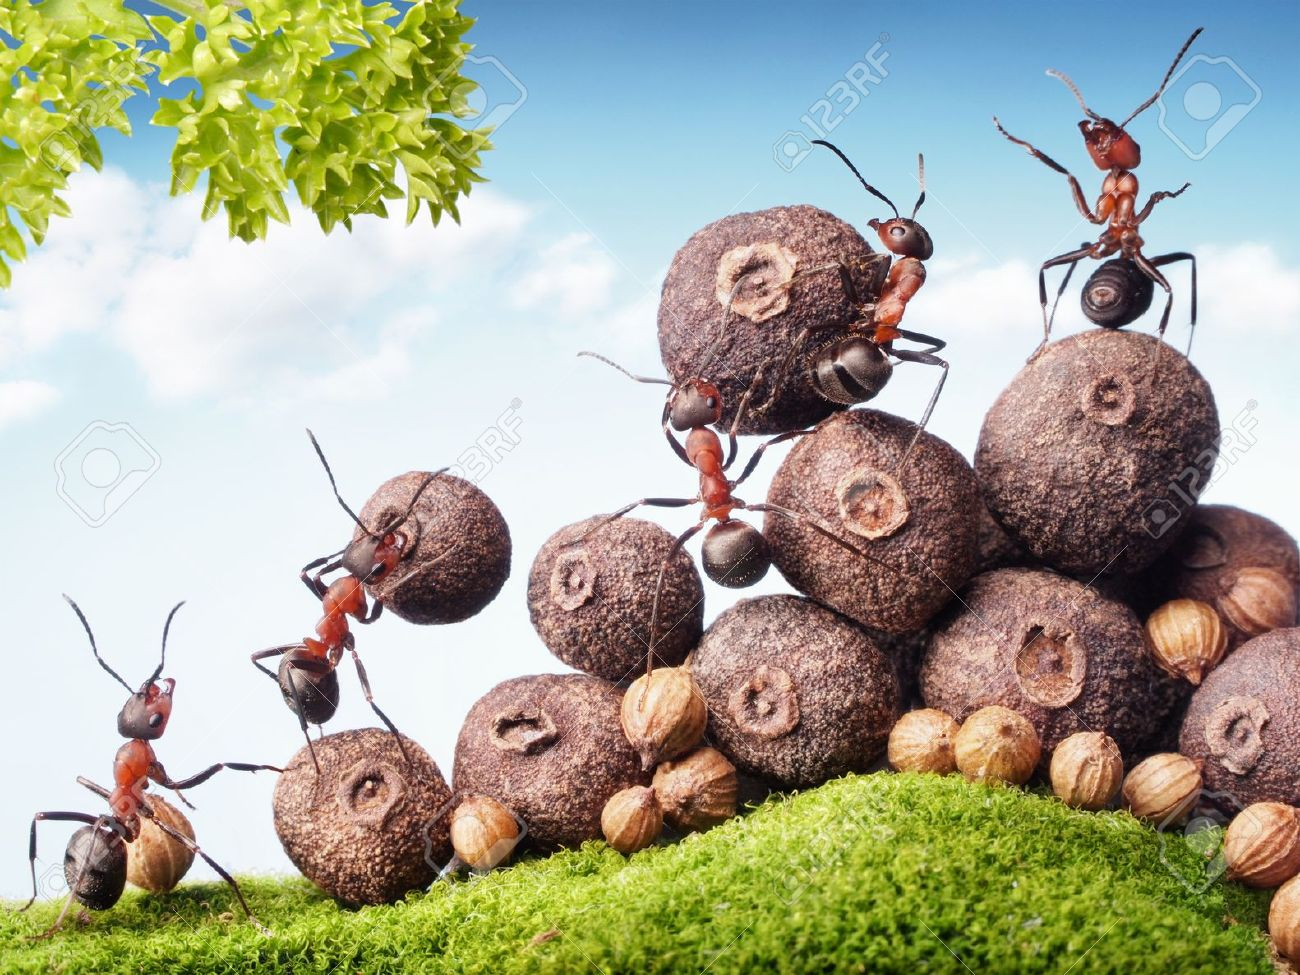 ant teamwork clipart 20 free Cliparts | Download images on ... - photo#35